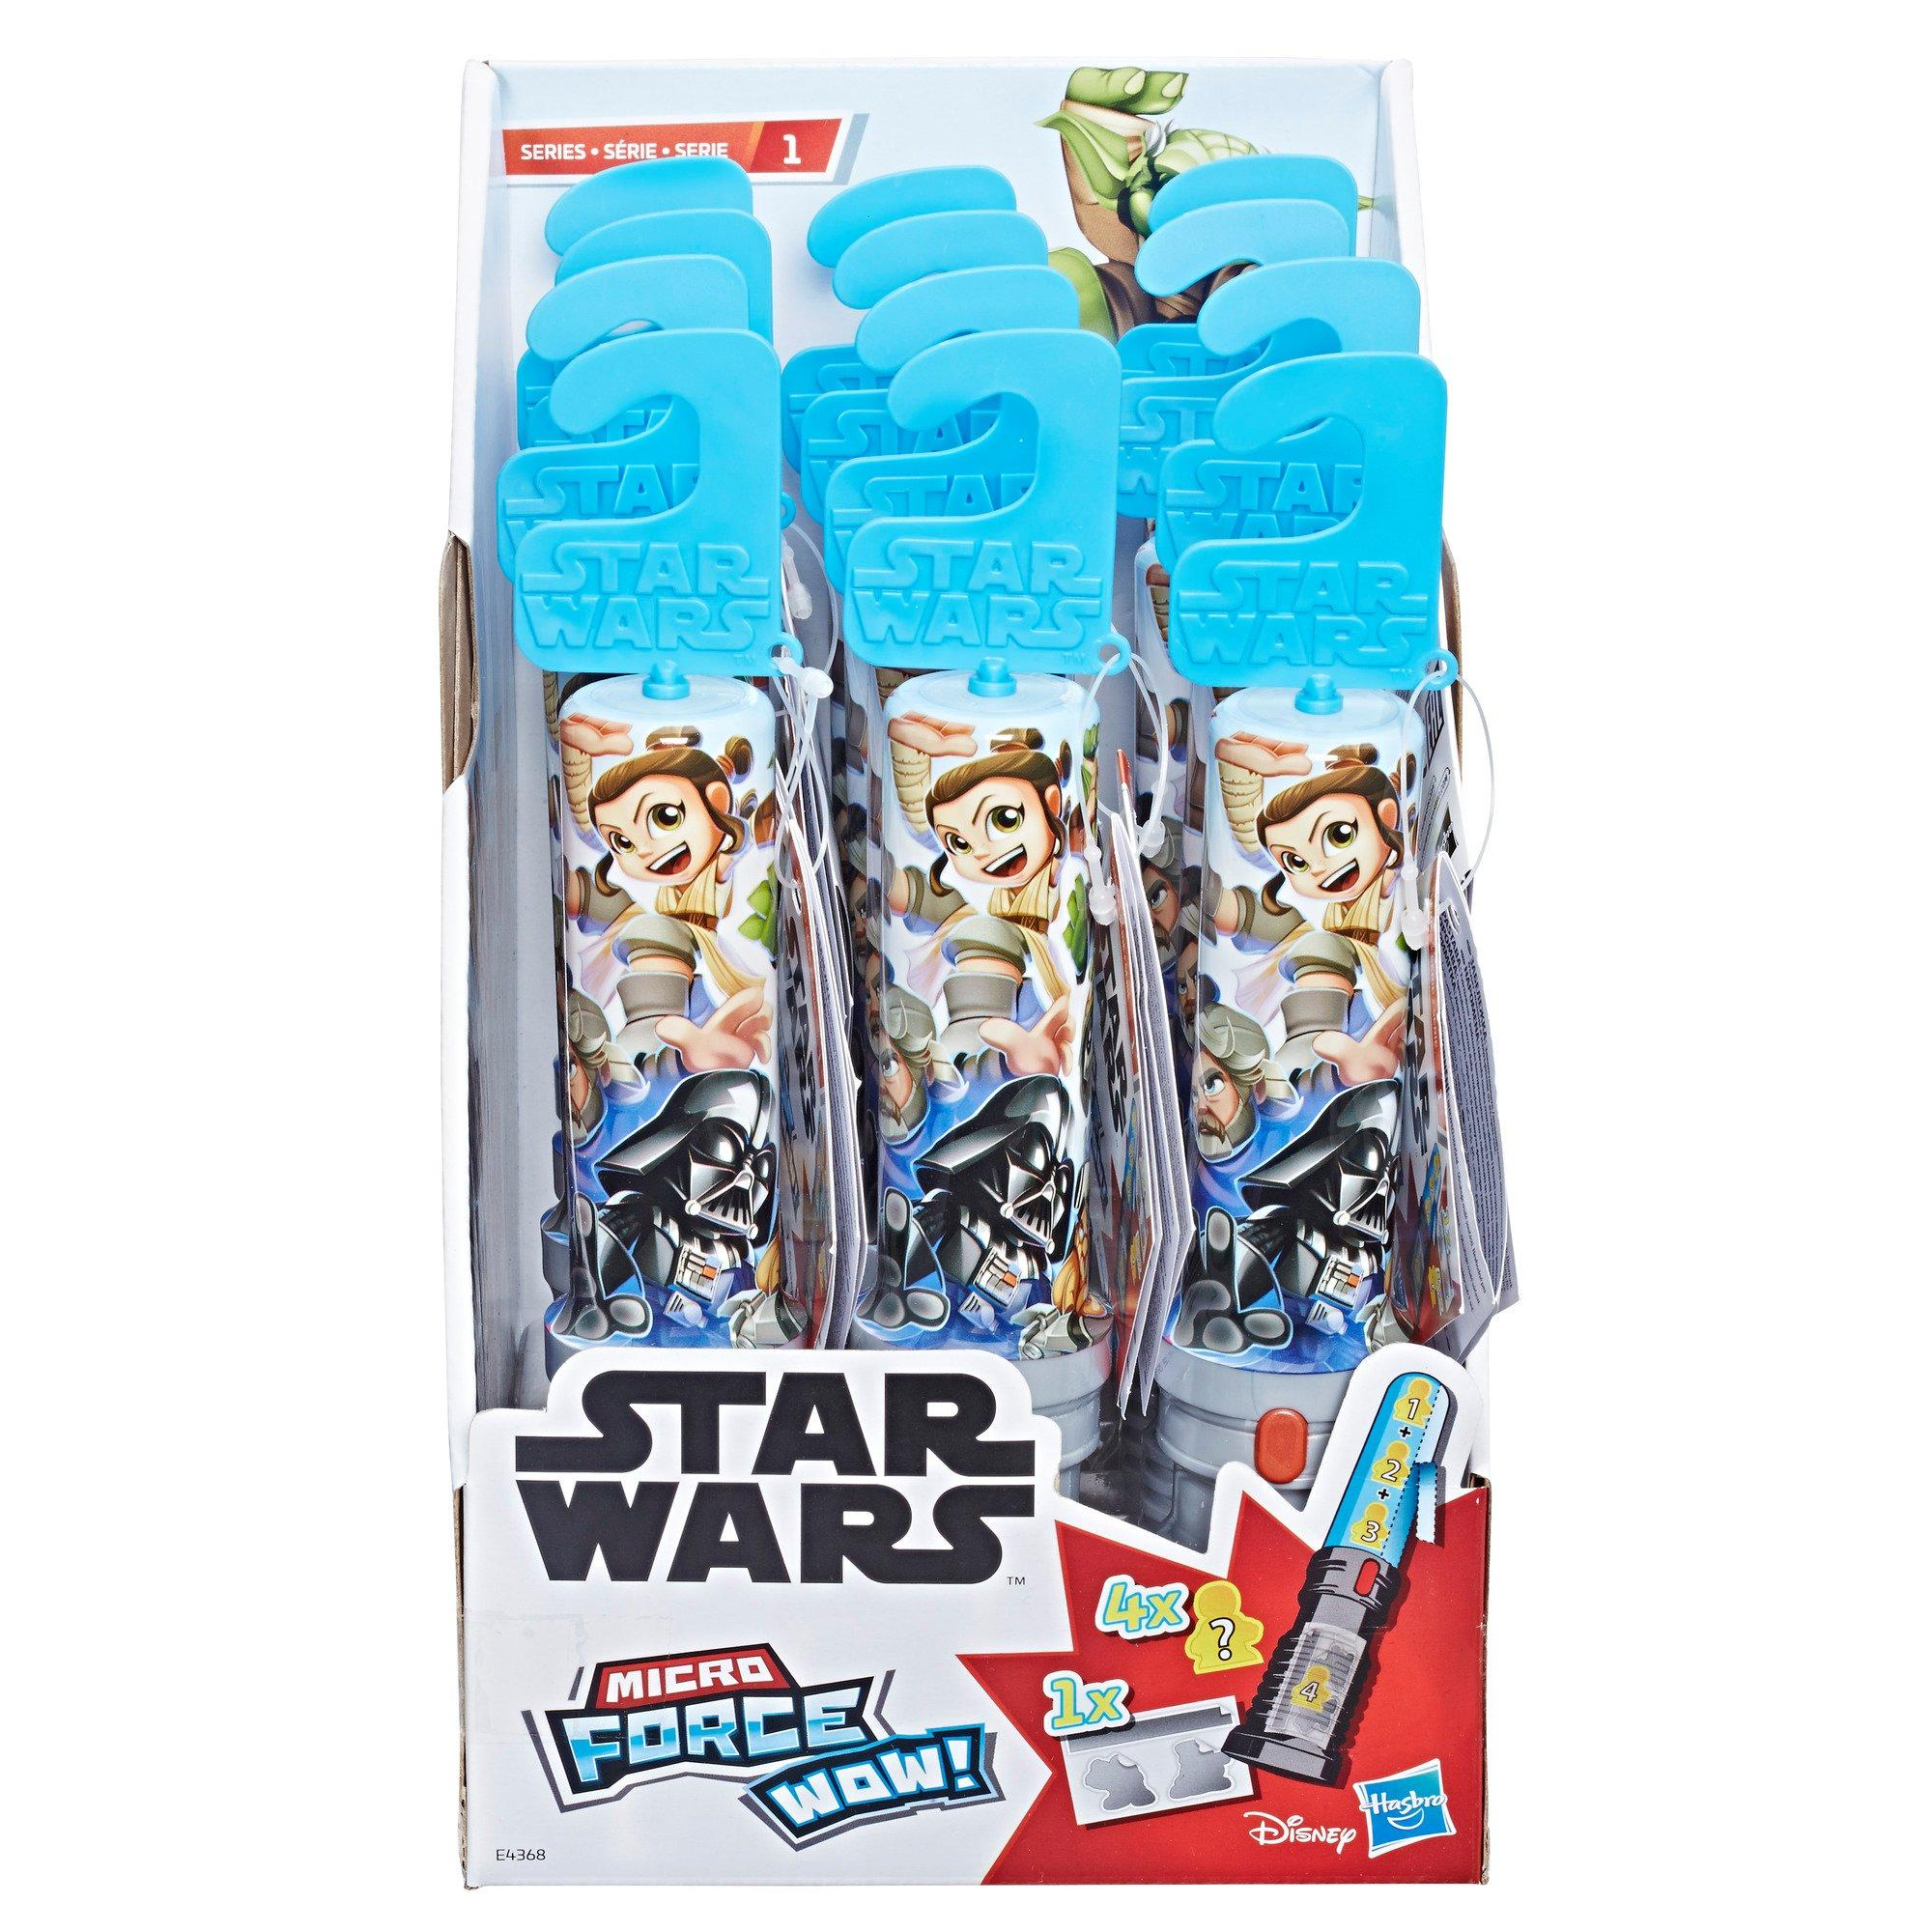 Series 1 Surprise Toy Collect Them All Star Wars Micro Force Wow Lot Of 2